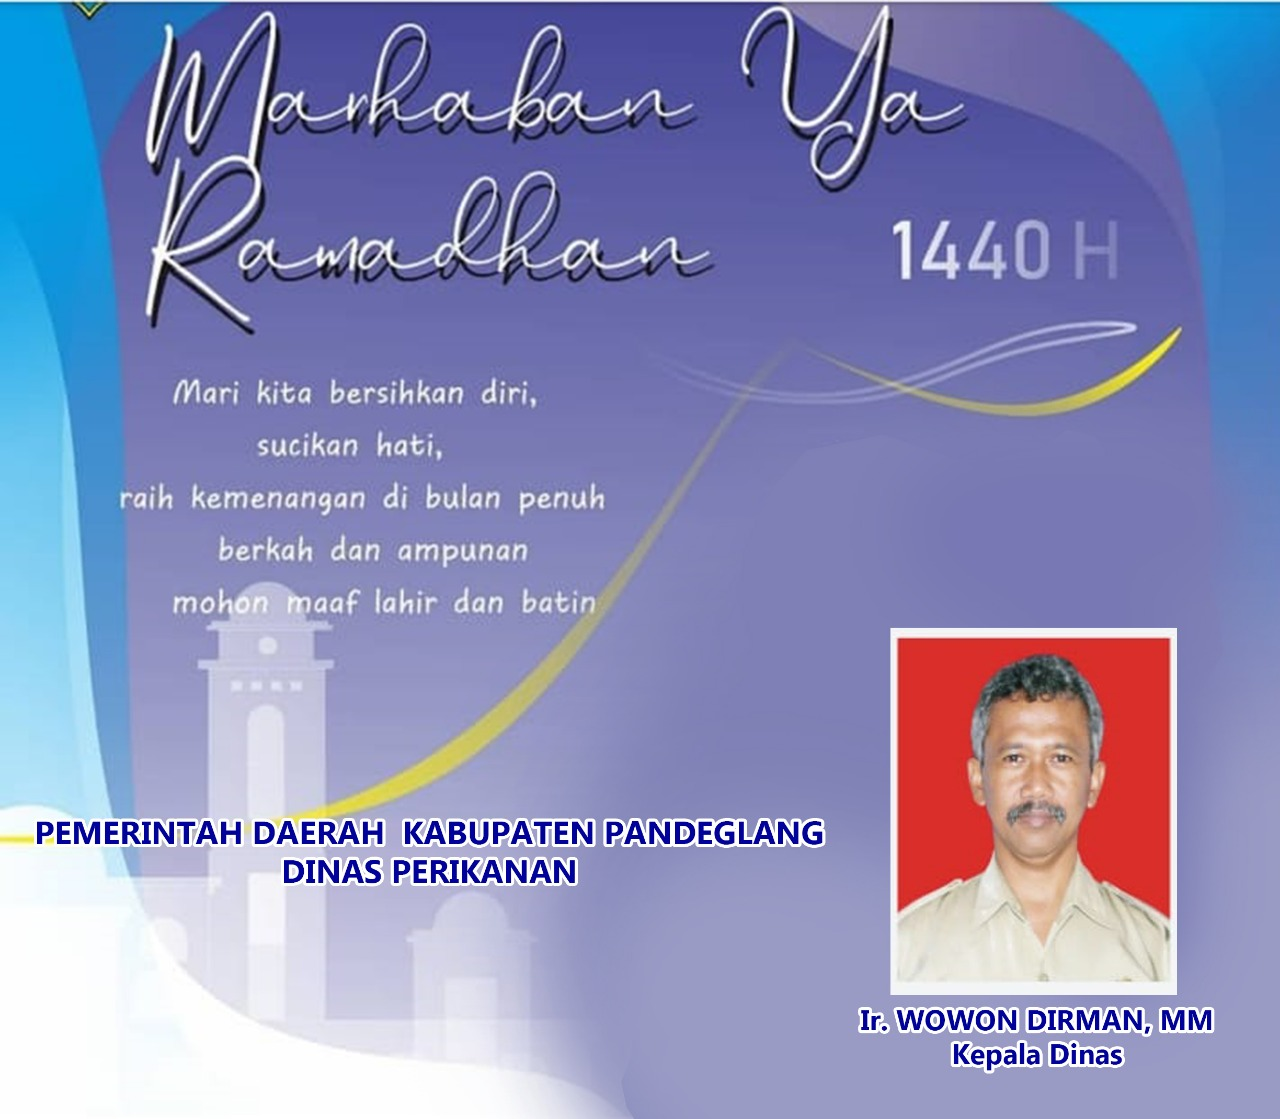 Ir.Wowon Dirman,MM